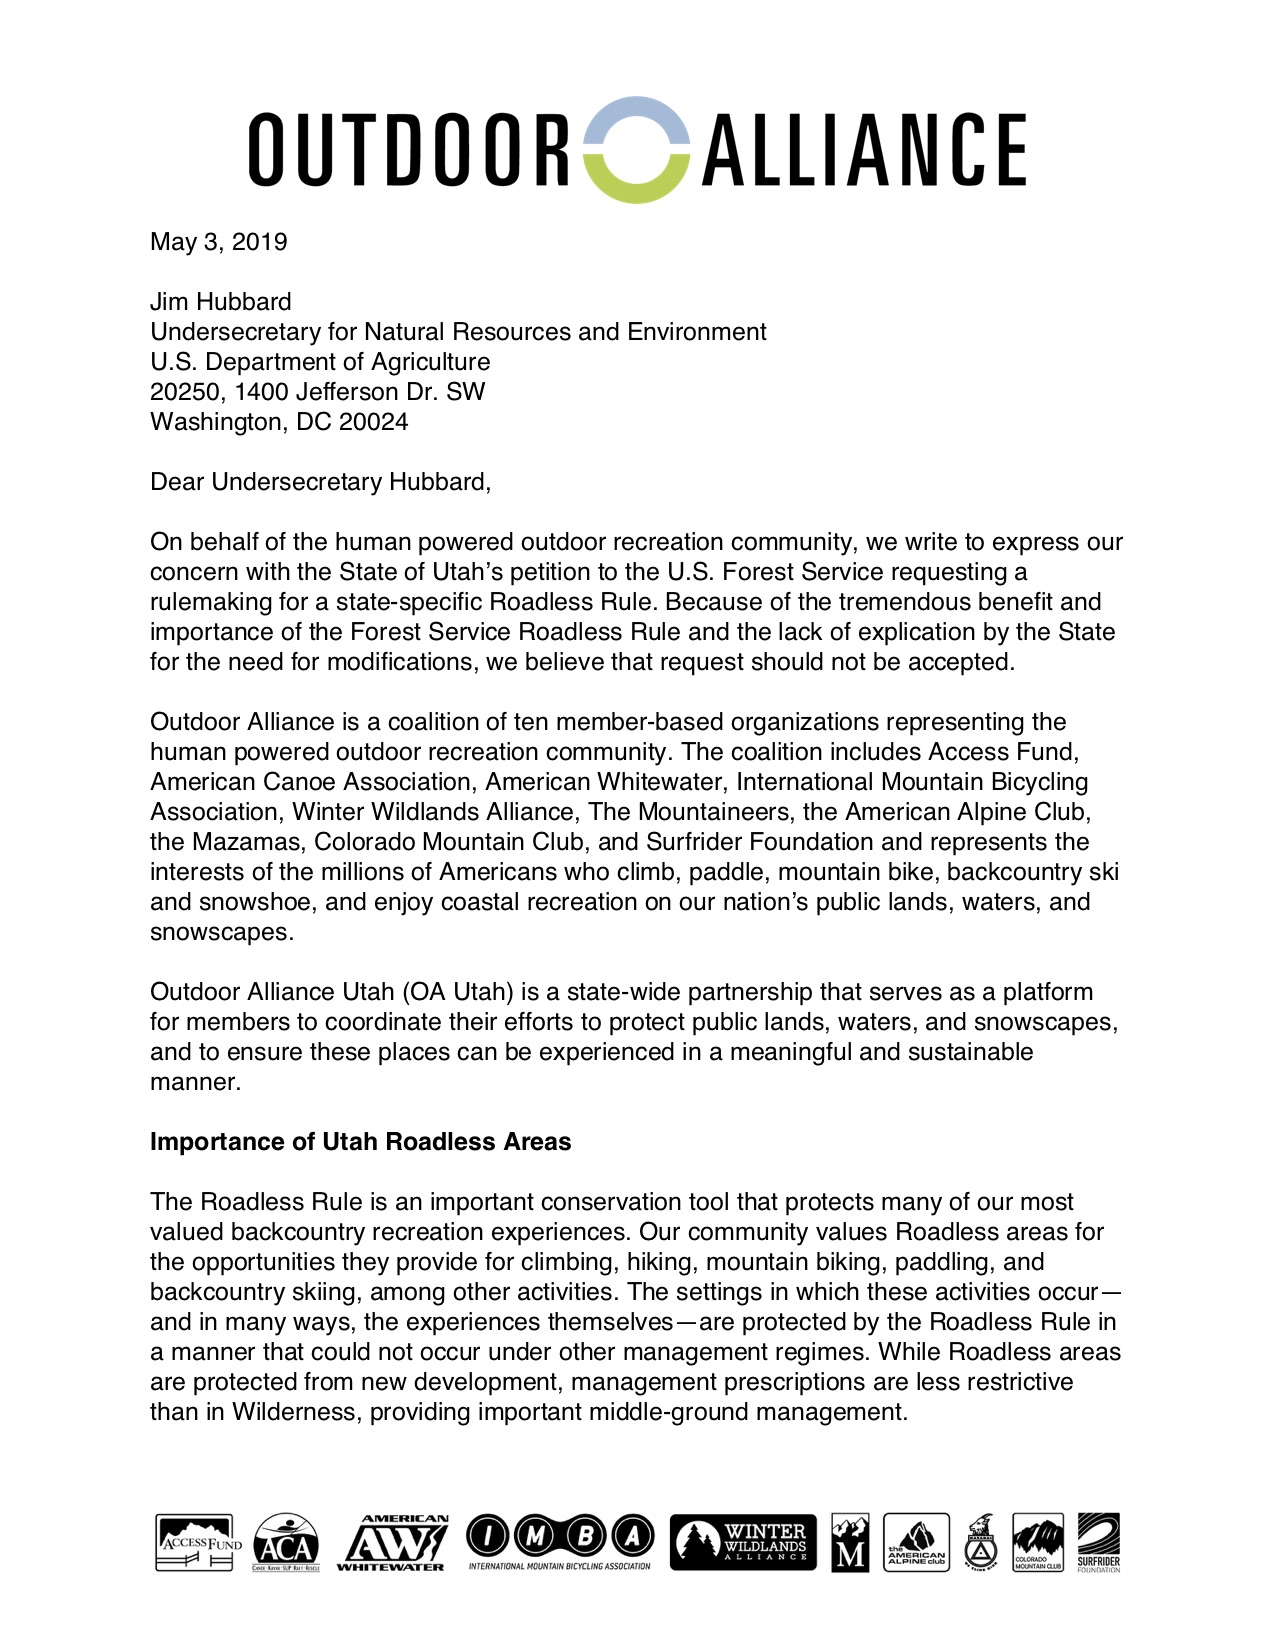 Click to read the whole letter to Undersecretary Hubbard